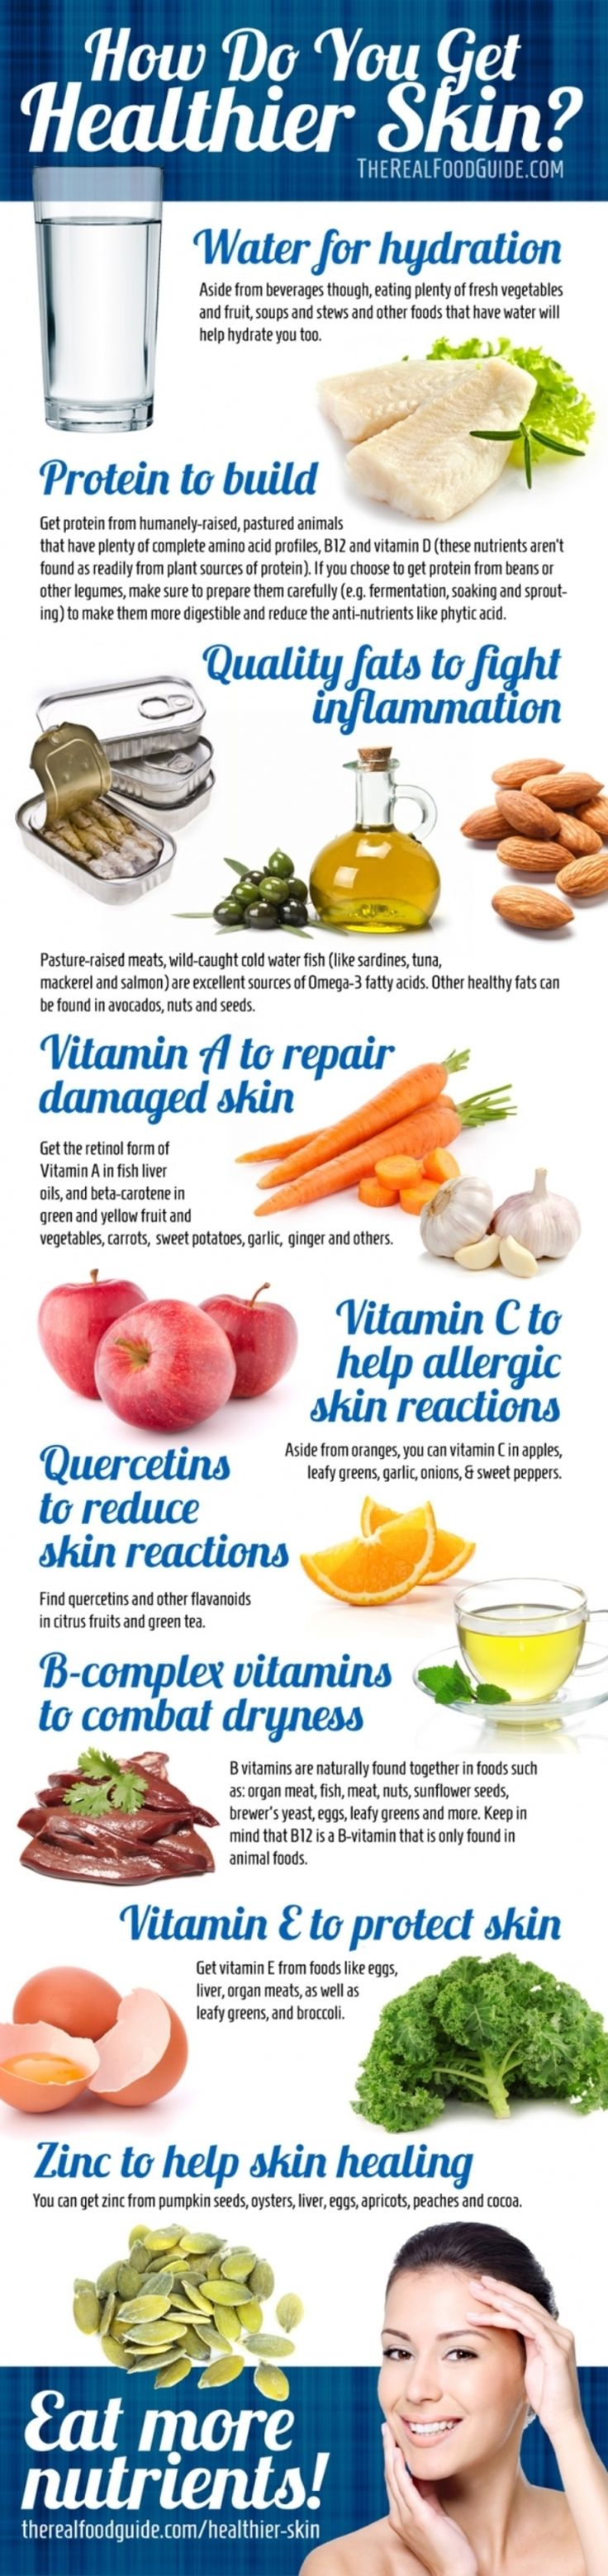 38 #Helpful #Beauty Infographics to Pore over ... Skin Care products - http://amzn.to/2iSUZHs